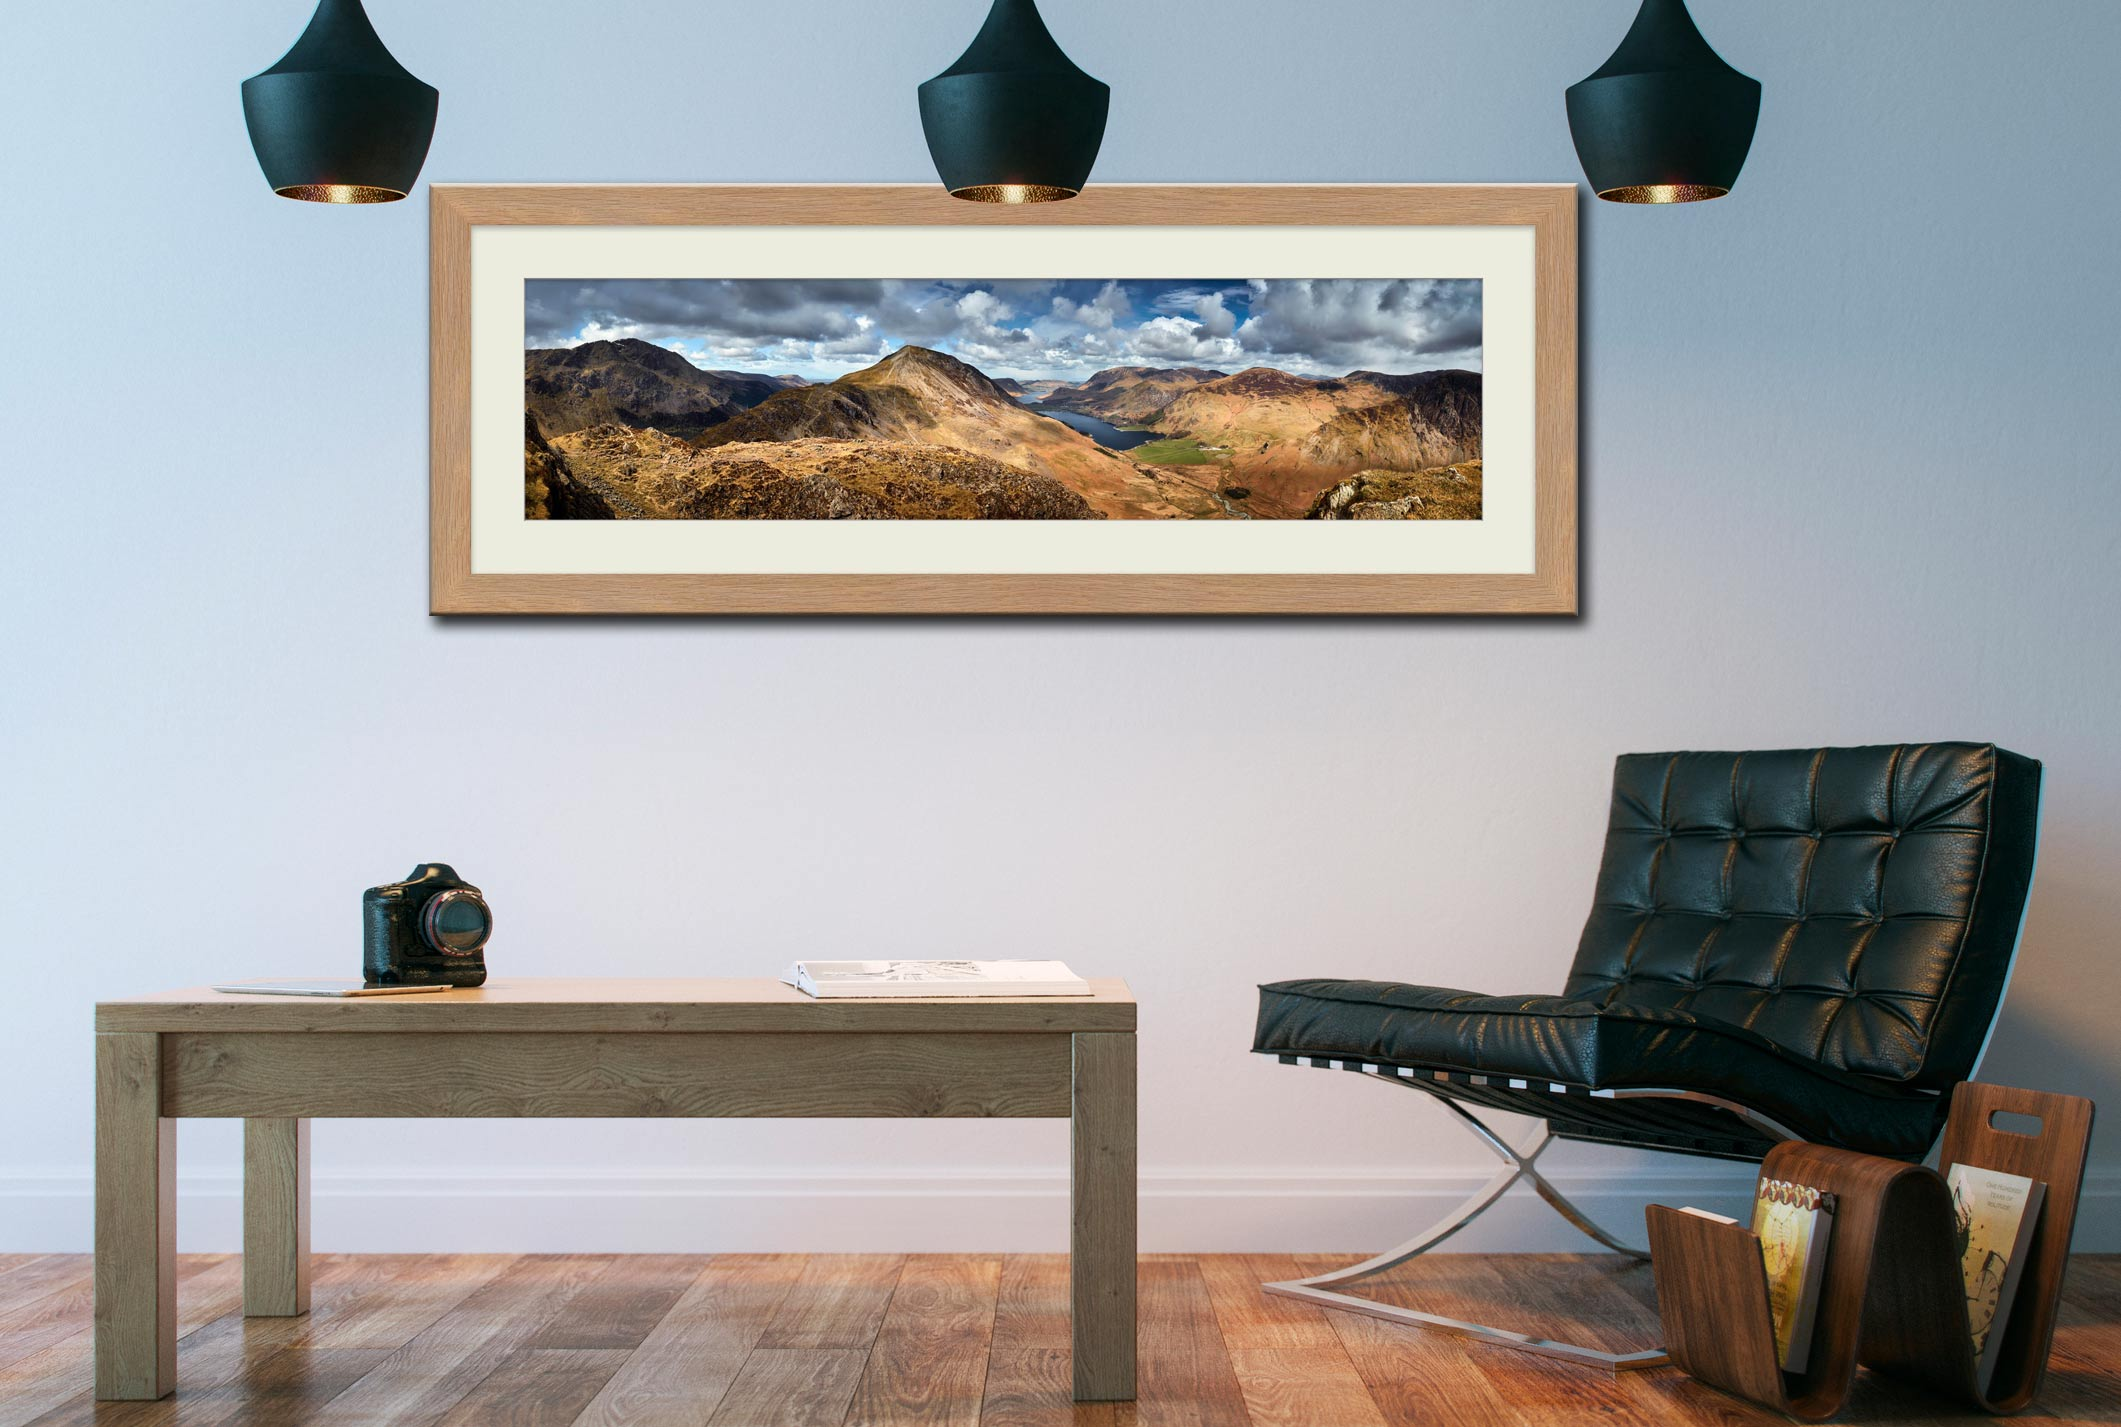 High Crag and Buttermere Panorama - Framed Print with Mount on Wall